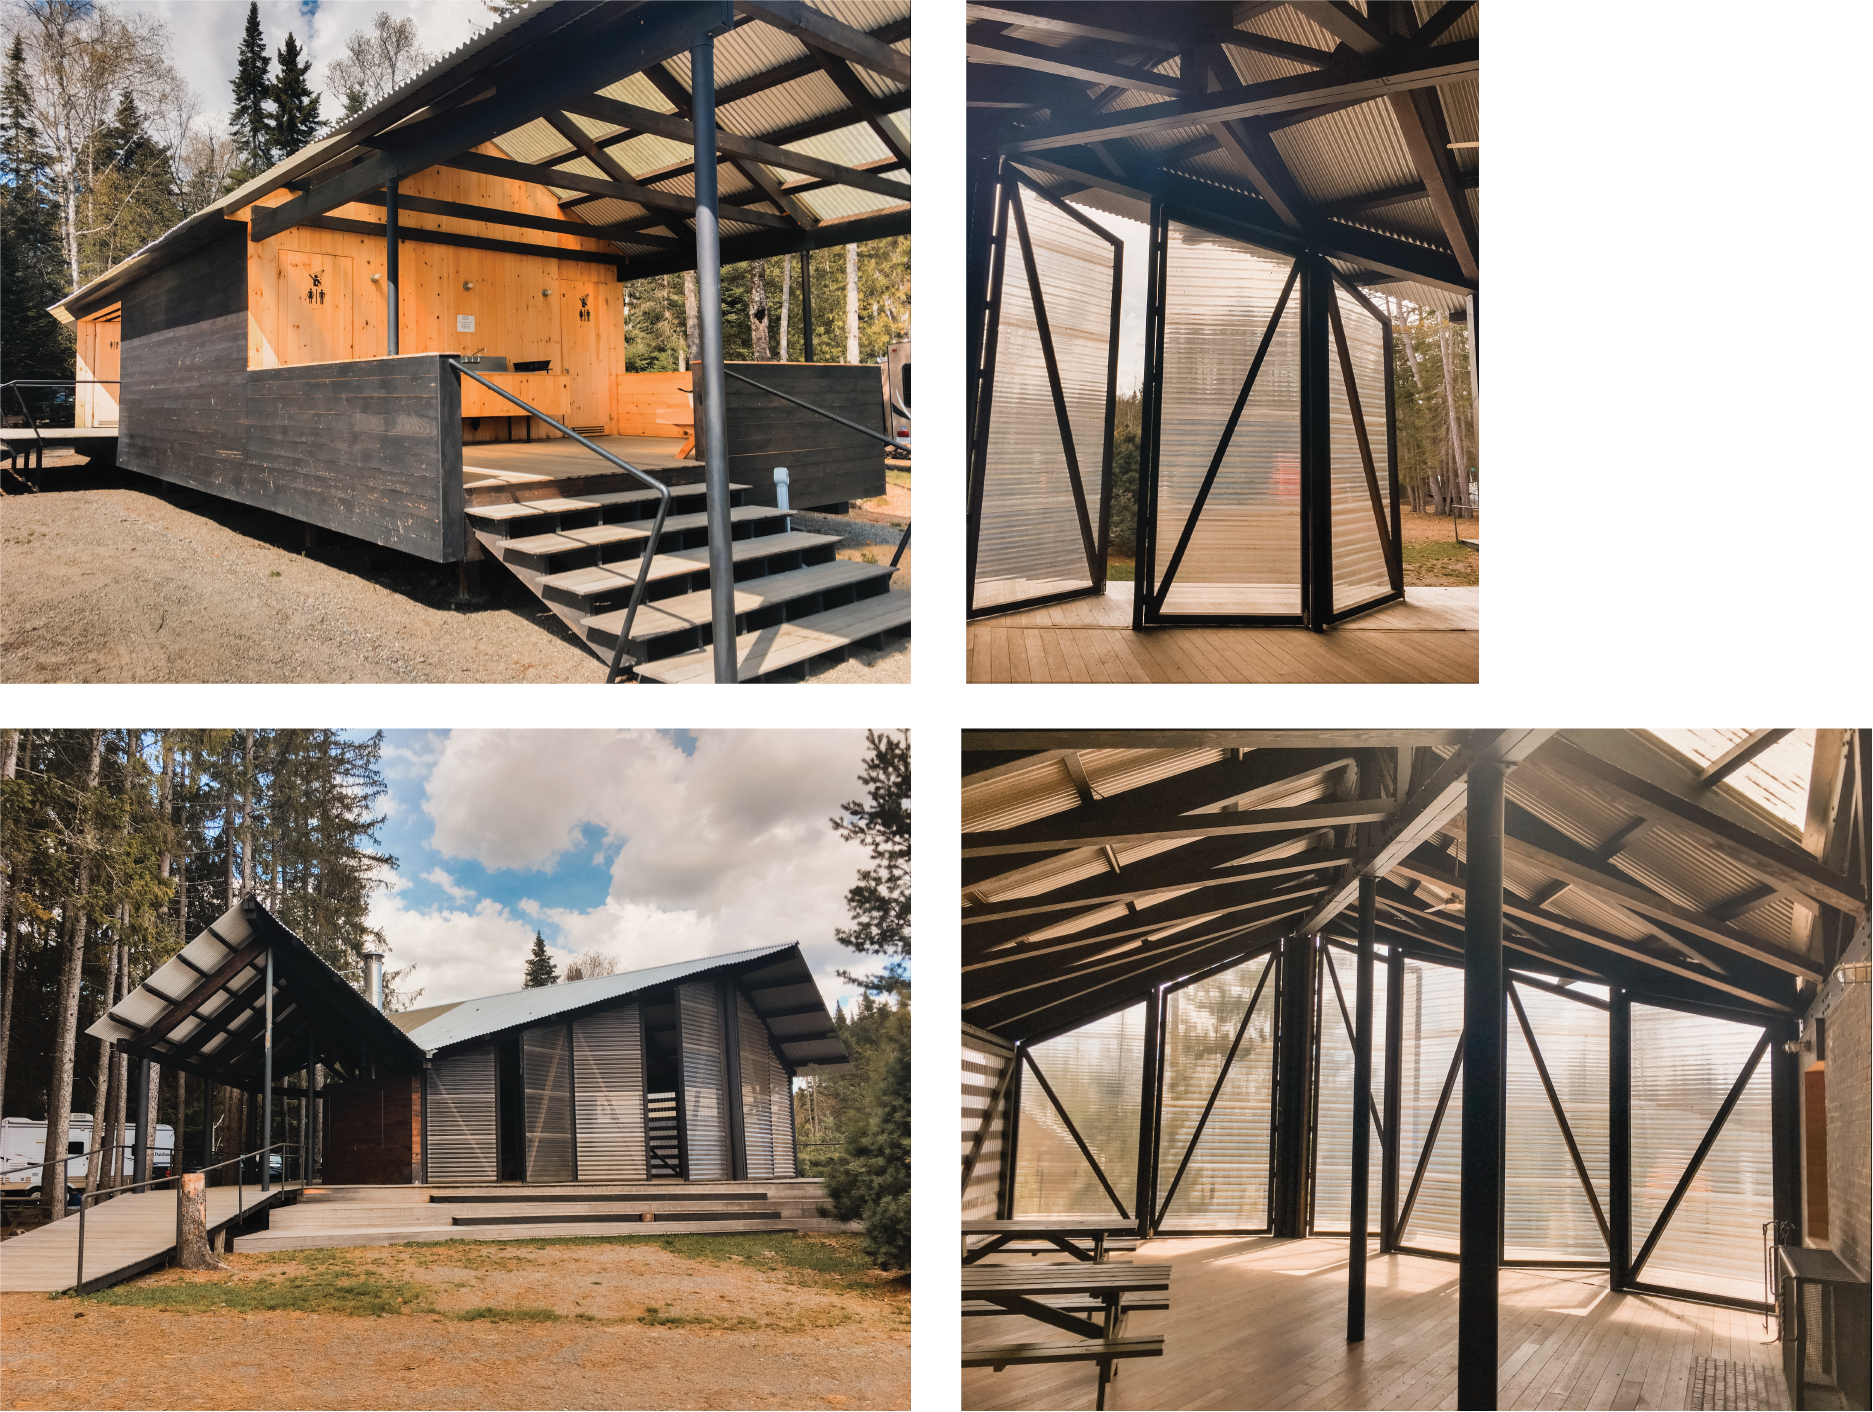 This is a campground! 🏕 We stayed for a few nights last month. The first photo is the bathroom 🚽 / dishwashing 🧼 / laundry 🧺 building and the other photos are the community building. I can't stop gawking at the genius roof assembly and those giant see-through doors. 🤩 Beautiful in its simplicity and functionality.